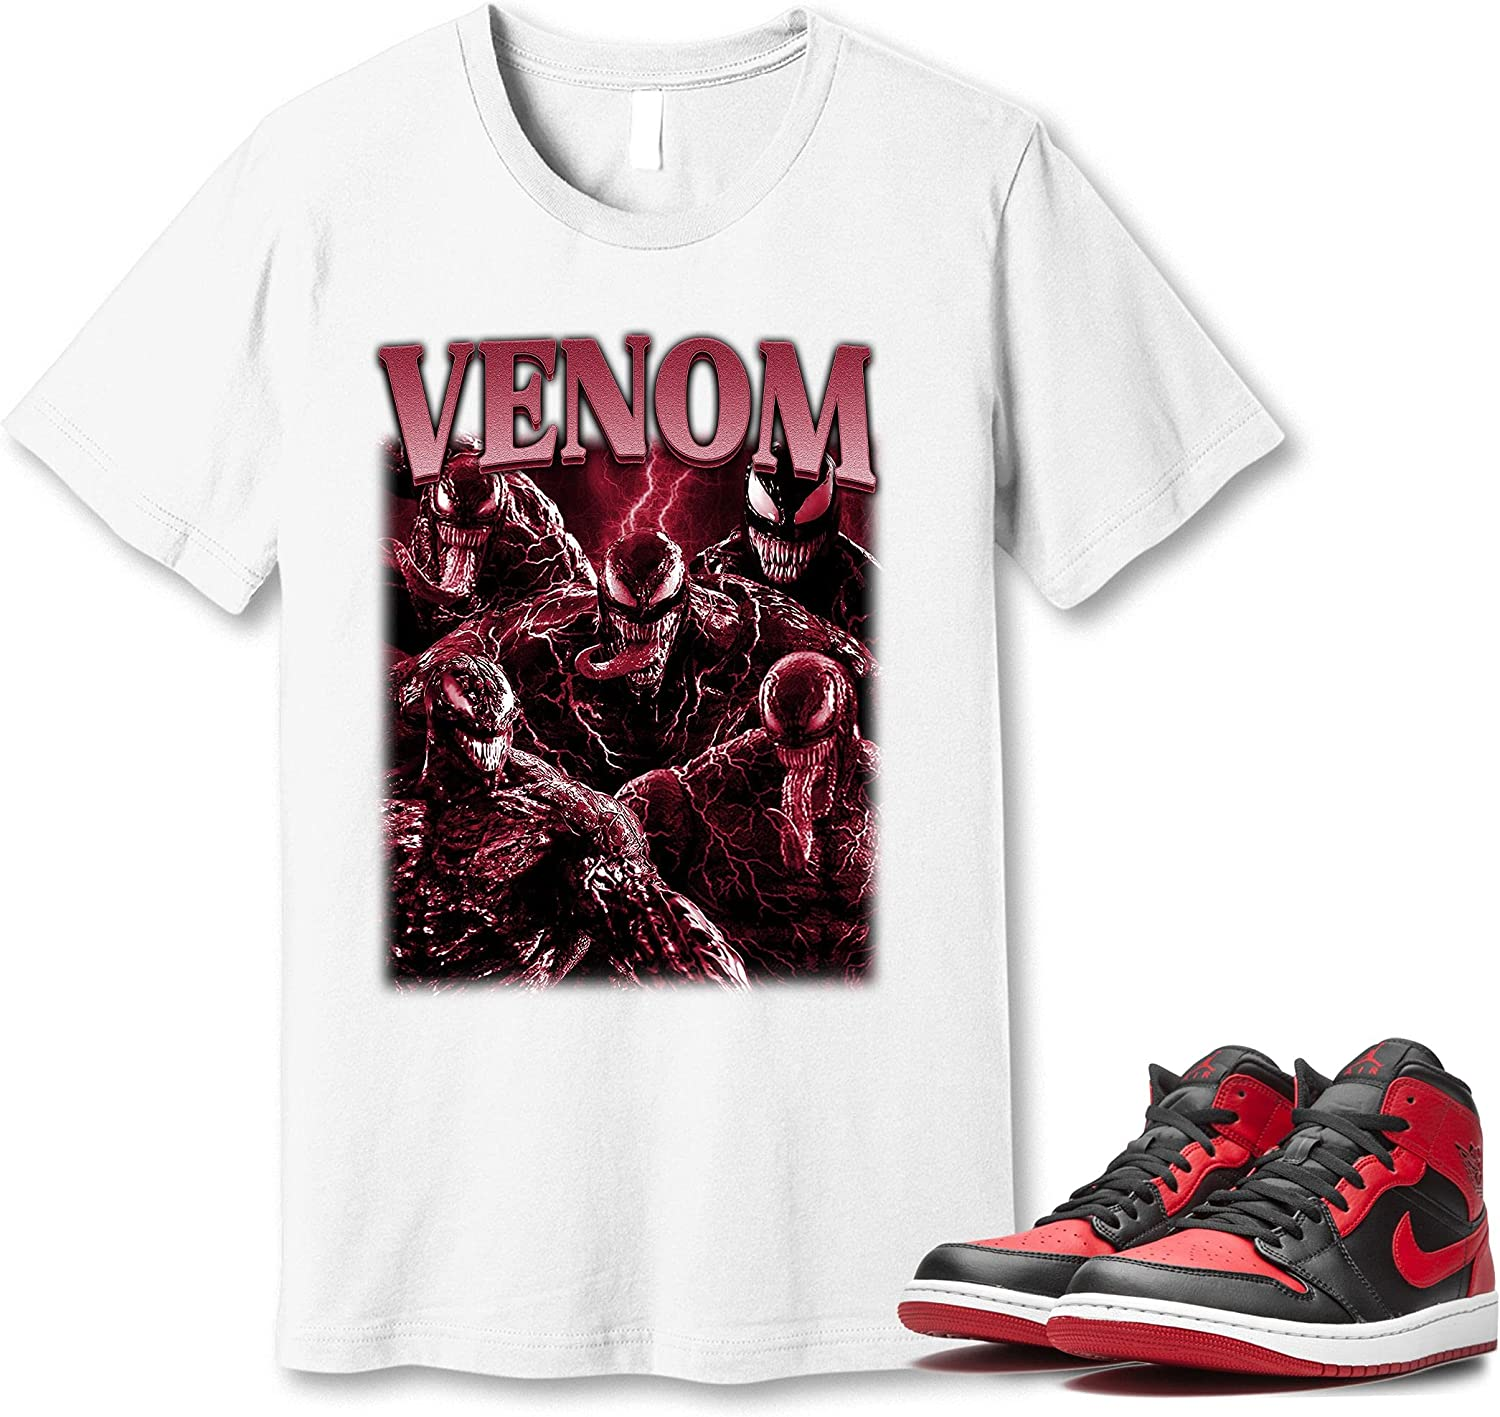 #Venom Japan Maker New T-Shirt to Match Jordan 1 Sneaker Snkrs Got Em Top Free shipping anywhere in the nation Banned